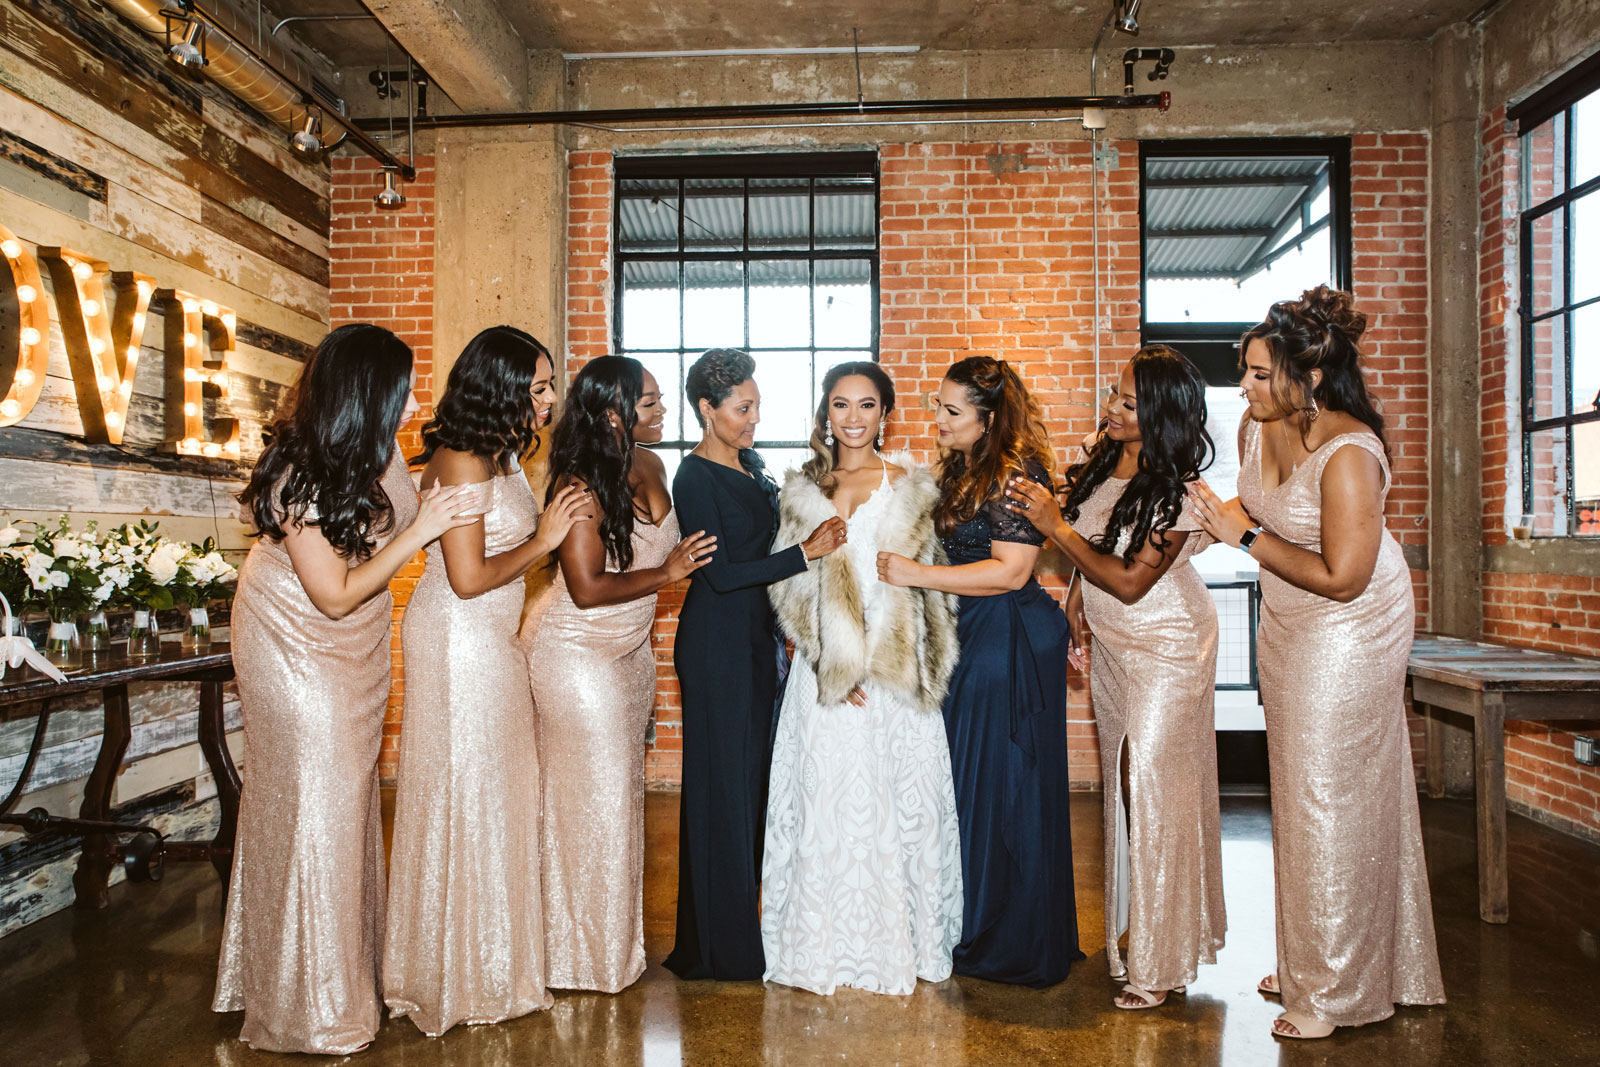 Bride and the bridal party, destination wedding photographer Barcelona | Natalia Wisniewska Photography